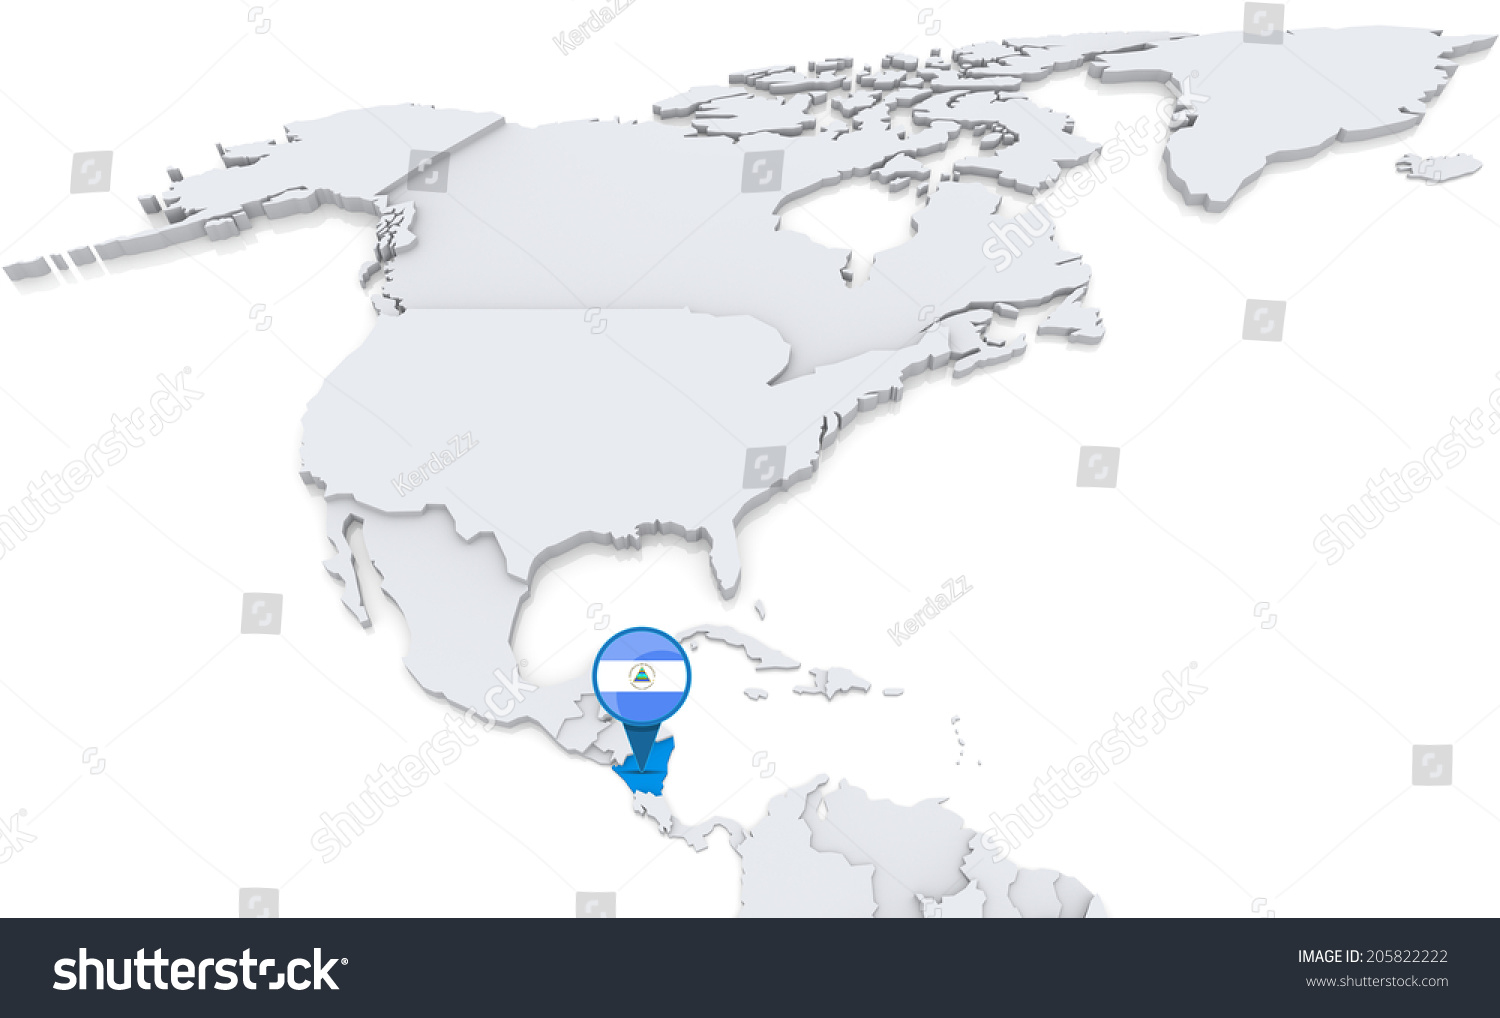 Highlighted nicaragua on map north america stock illustration highlighted nicaragua on map north america stock illustration 205822222 shutterstock gumiabroncs Images